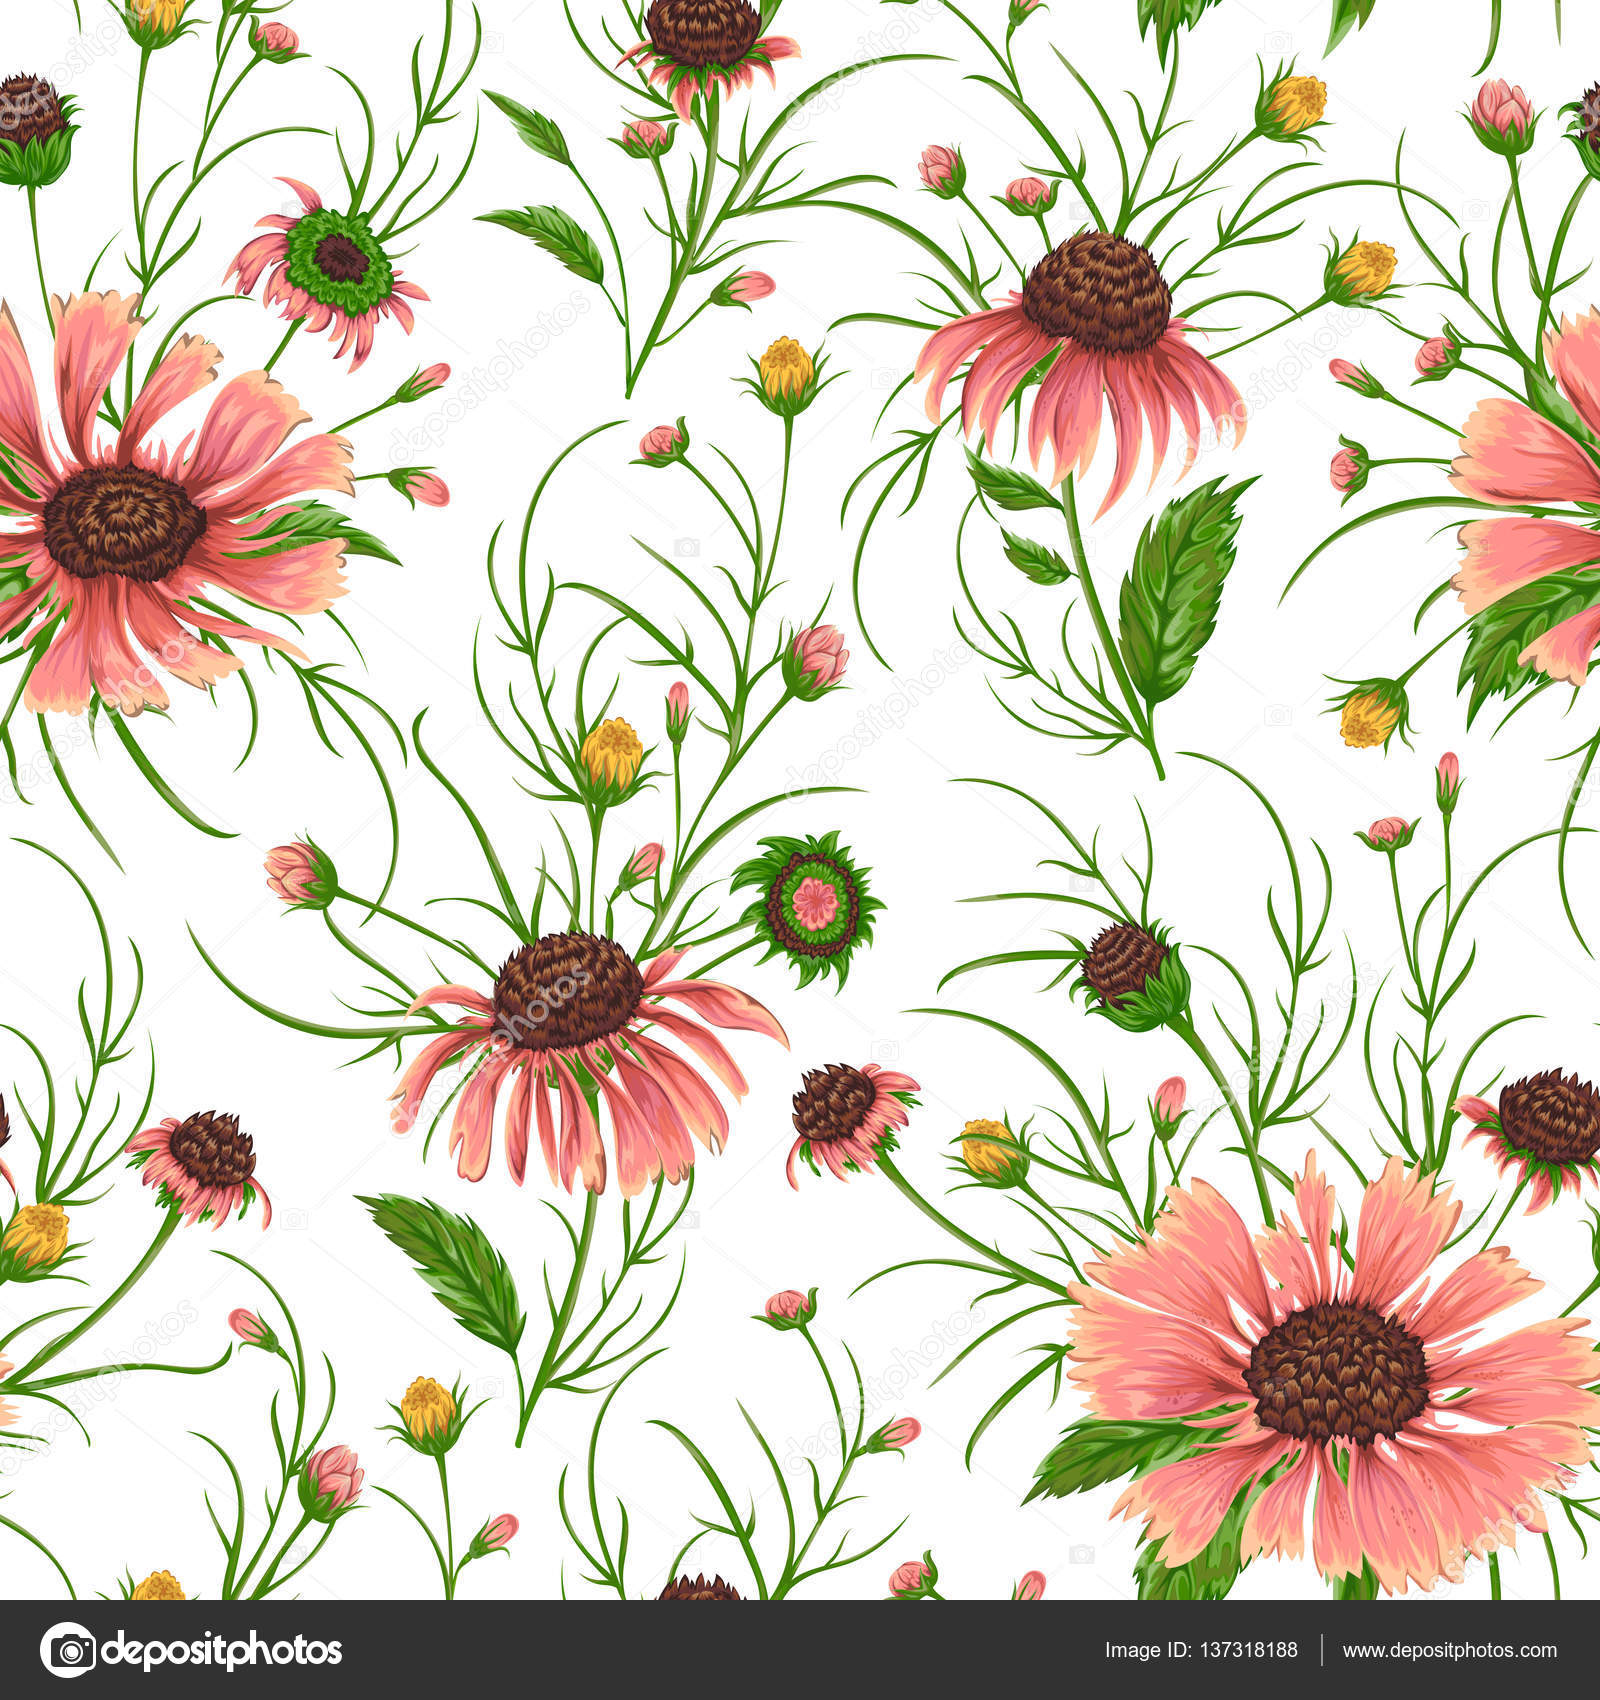 Rustic Floral Backgrounds Seamless Pattern With Chamomile